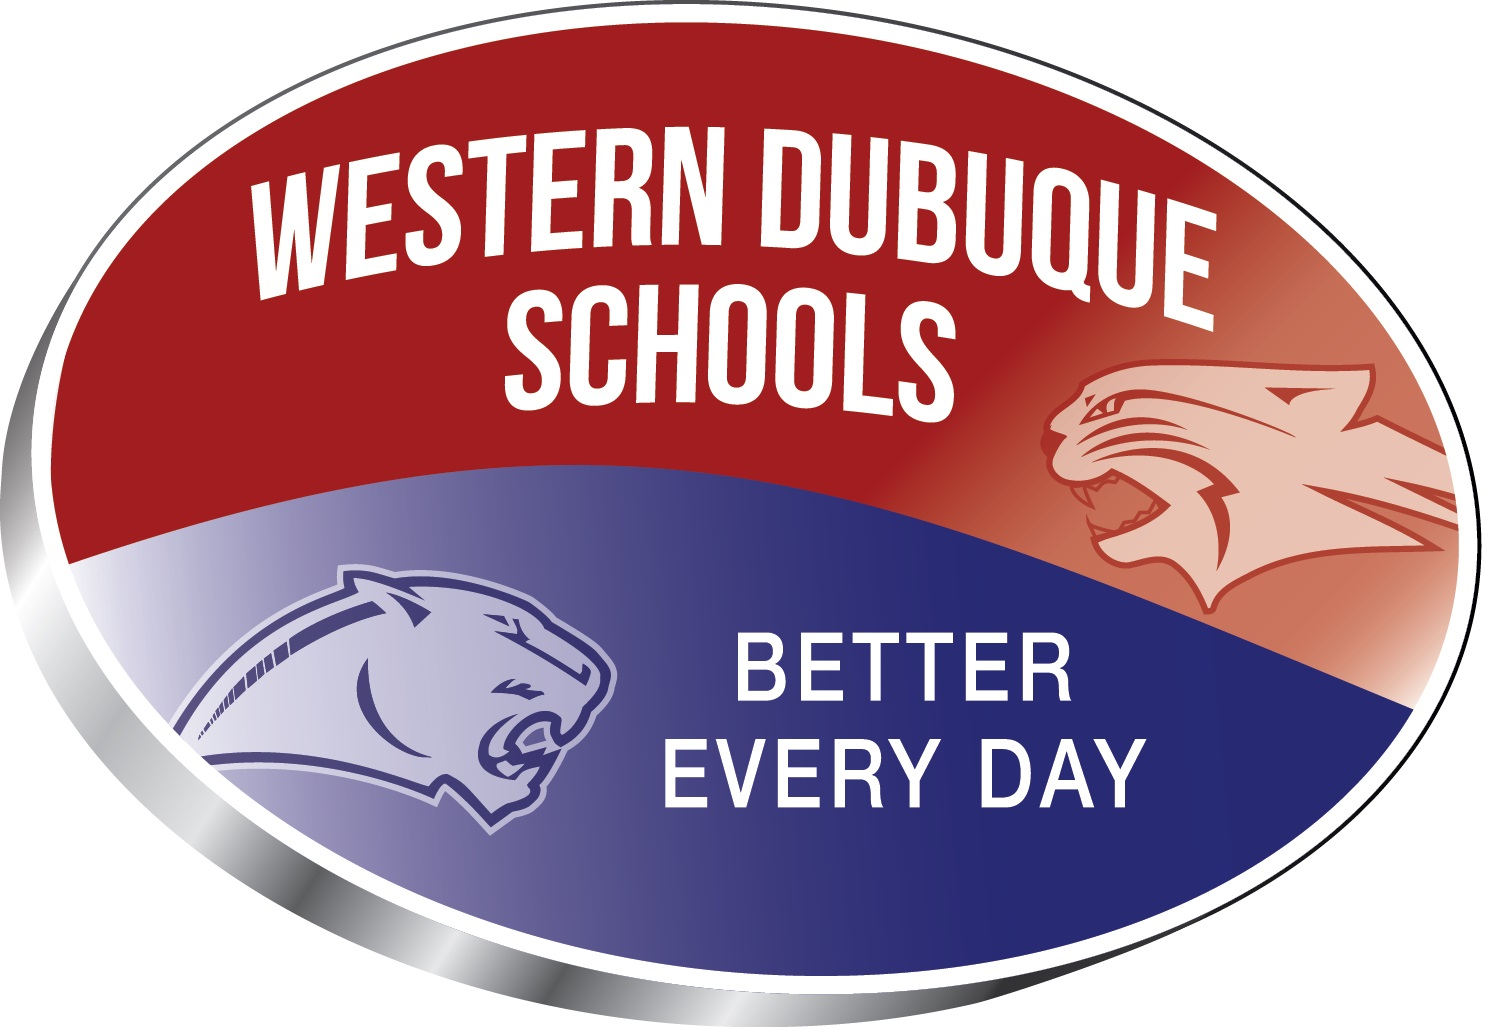 Western Dubuque Schools - Better Every Day